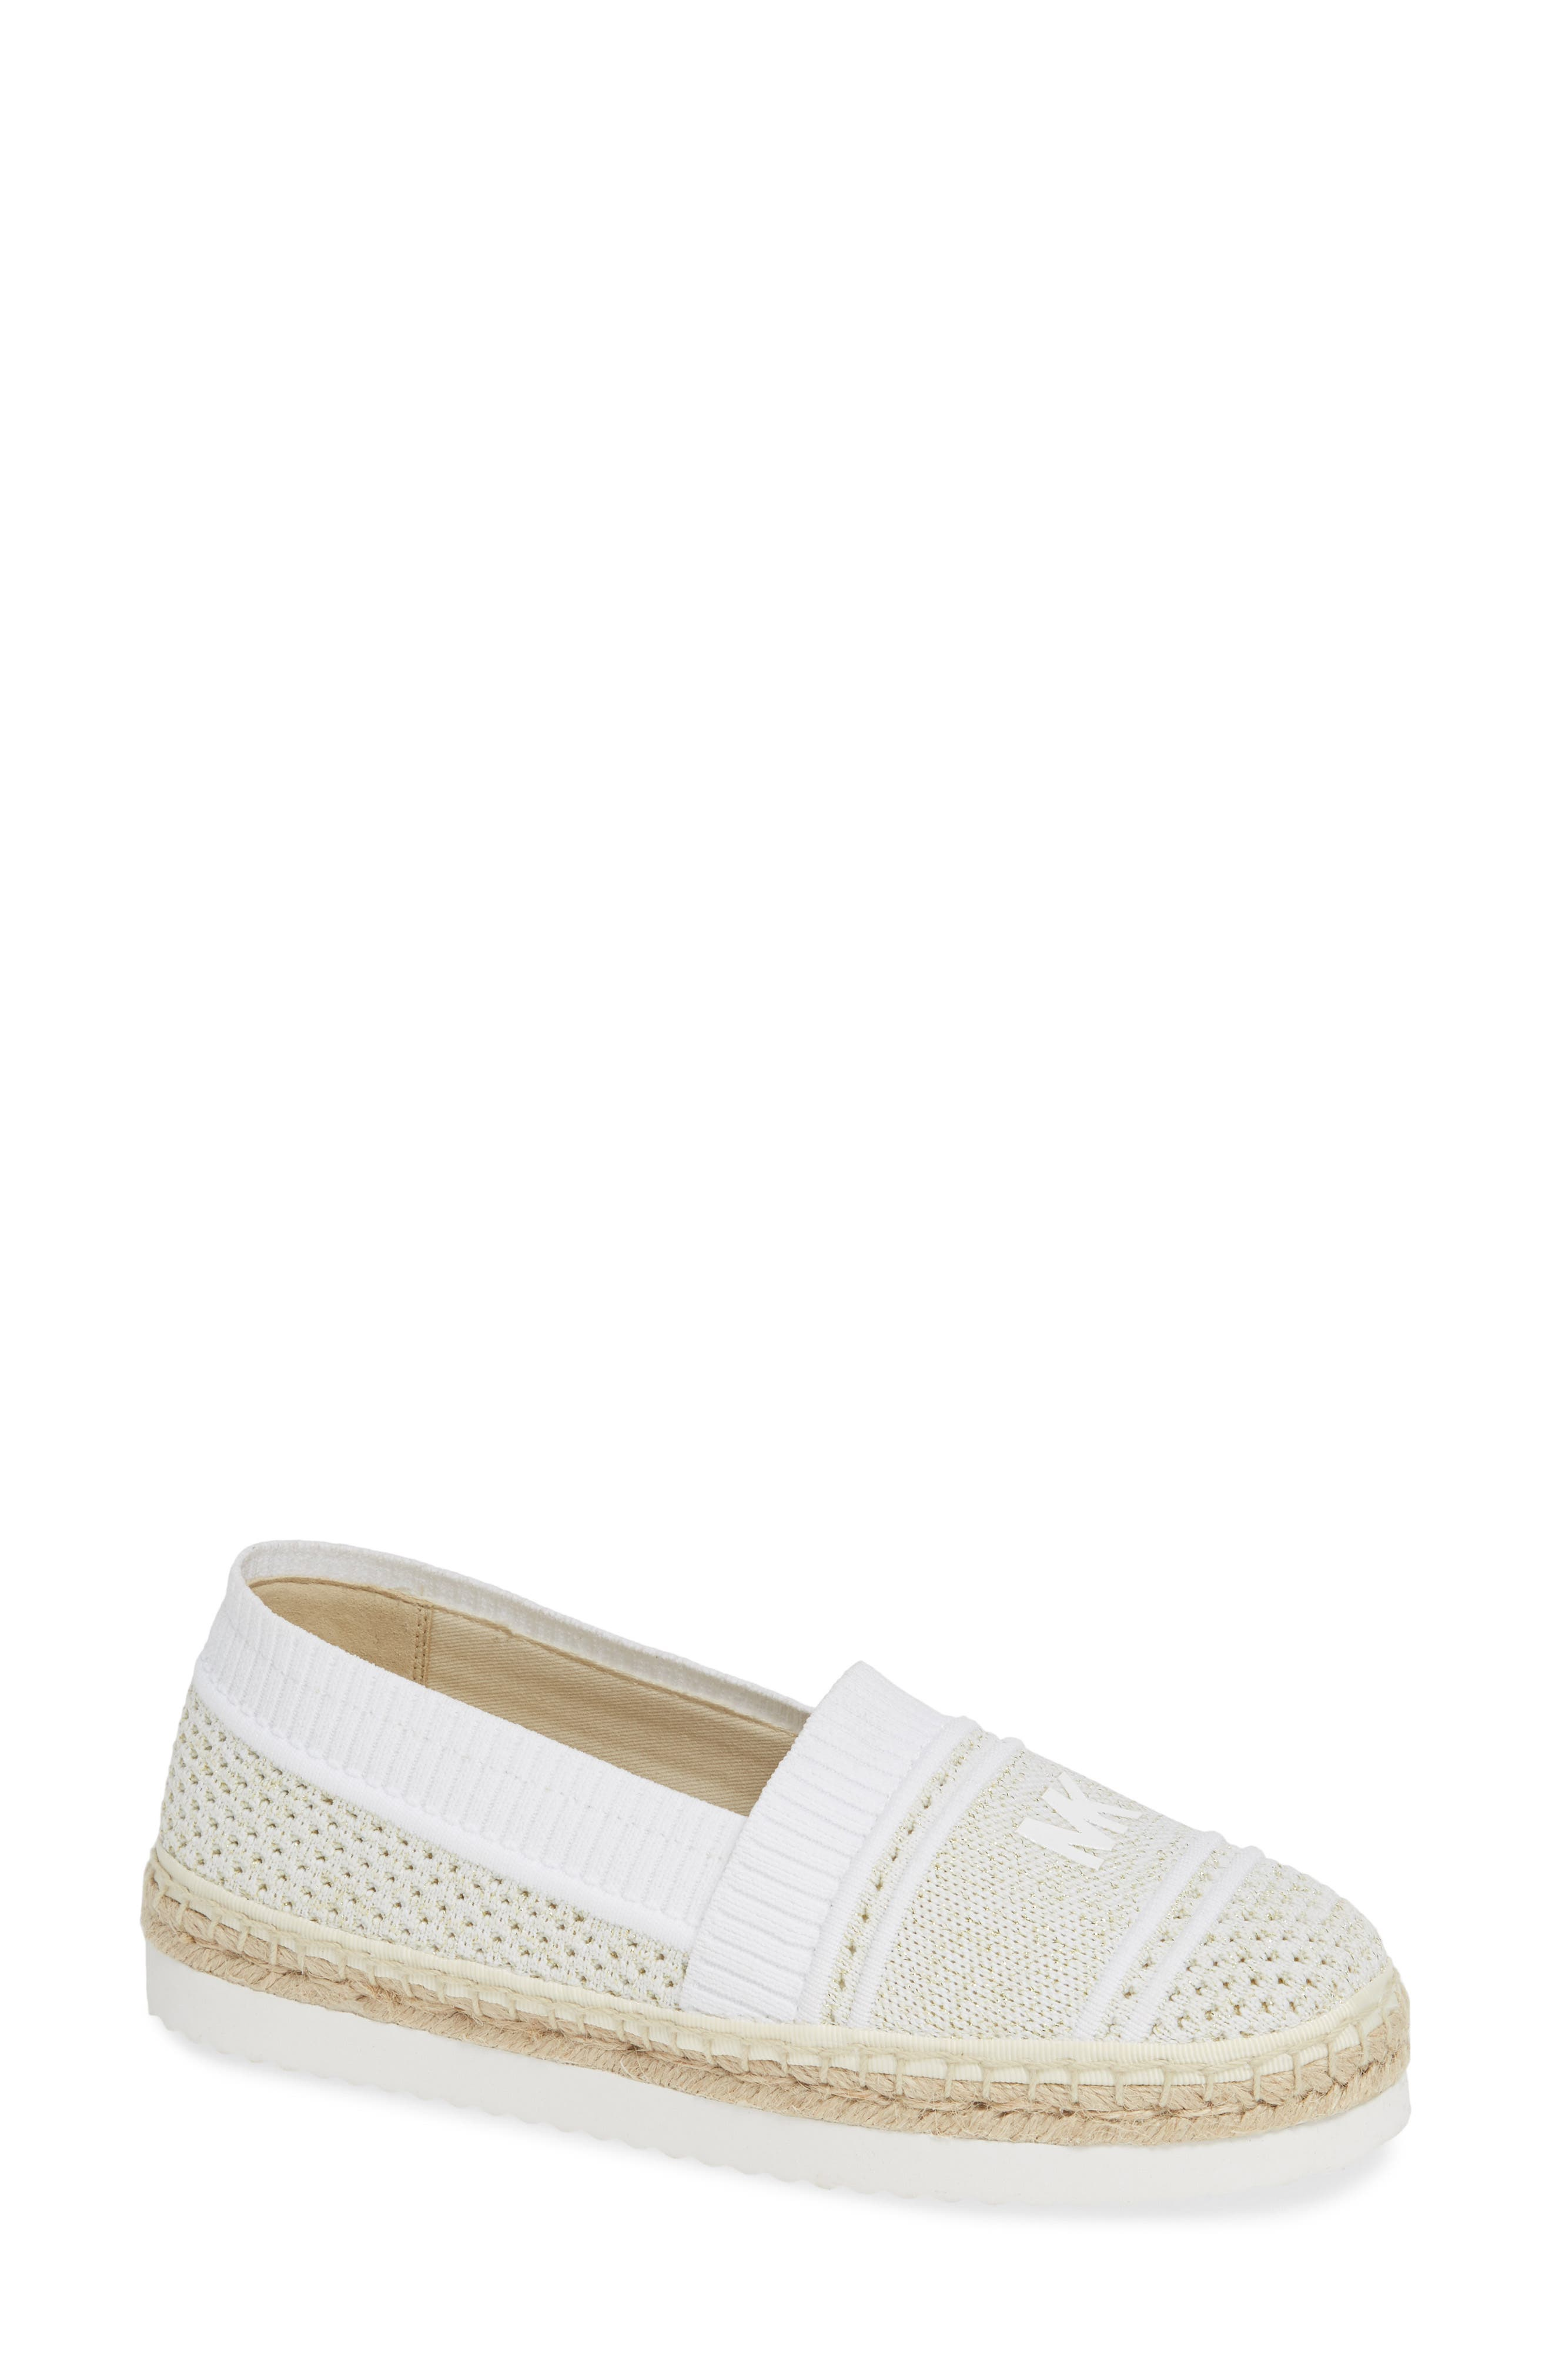 Raya Espadrille in Pale Gold Fabric